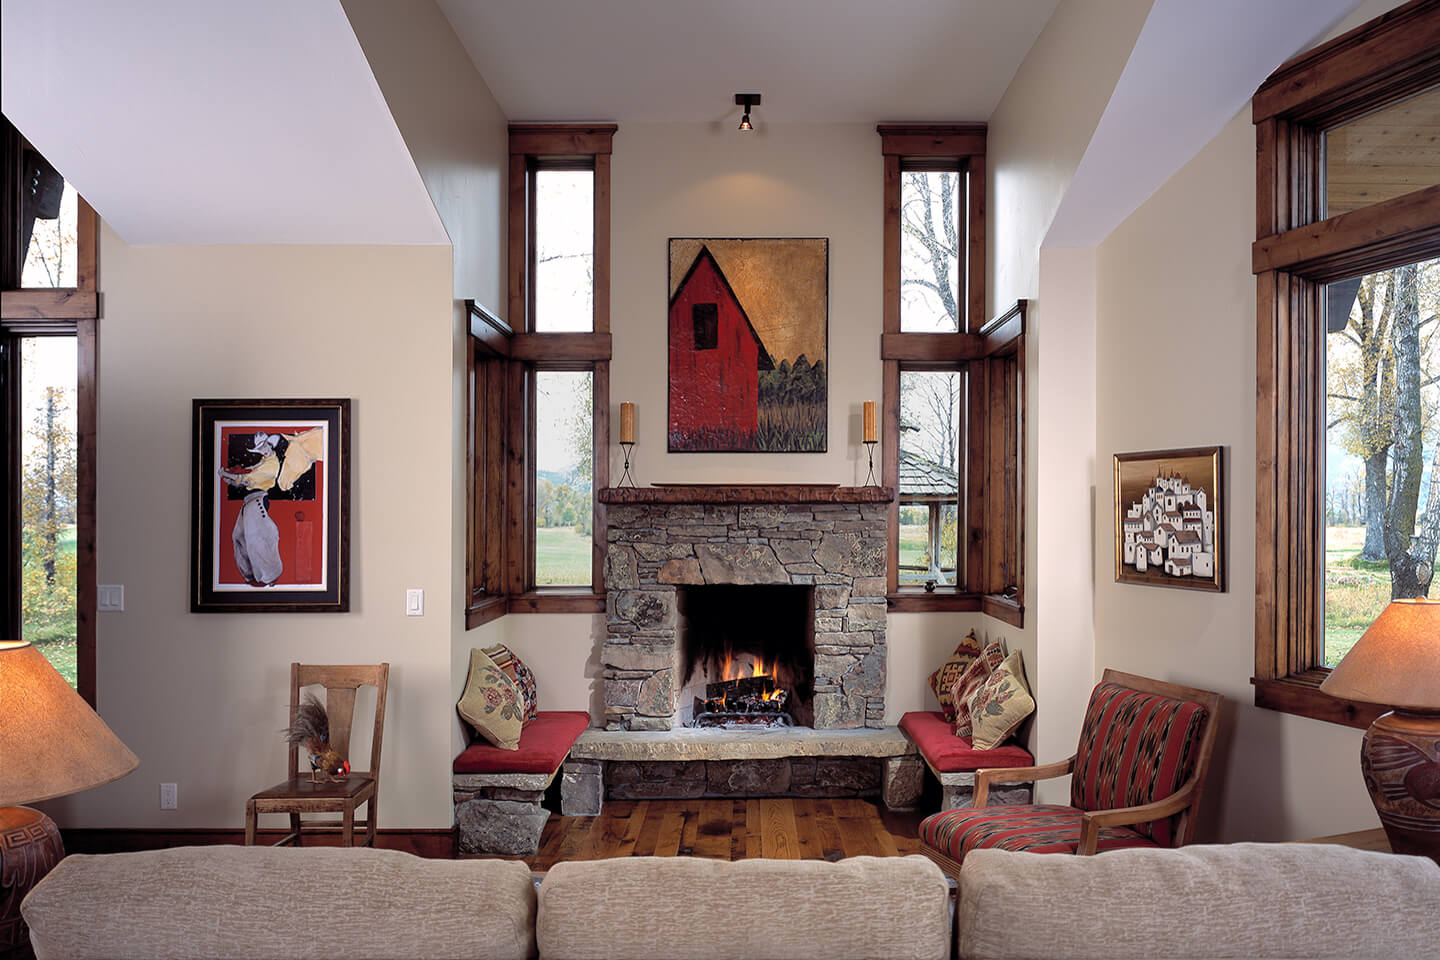 Living room with open hearth fireplace and artwork